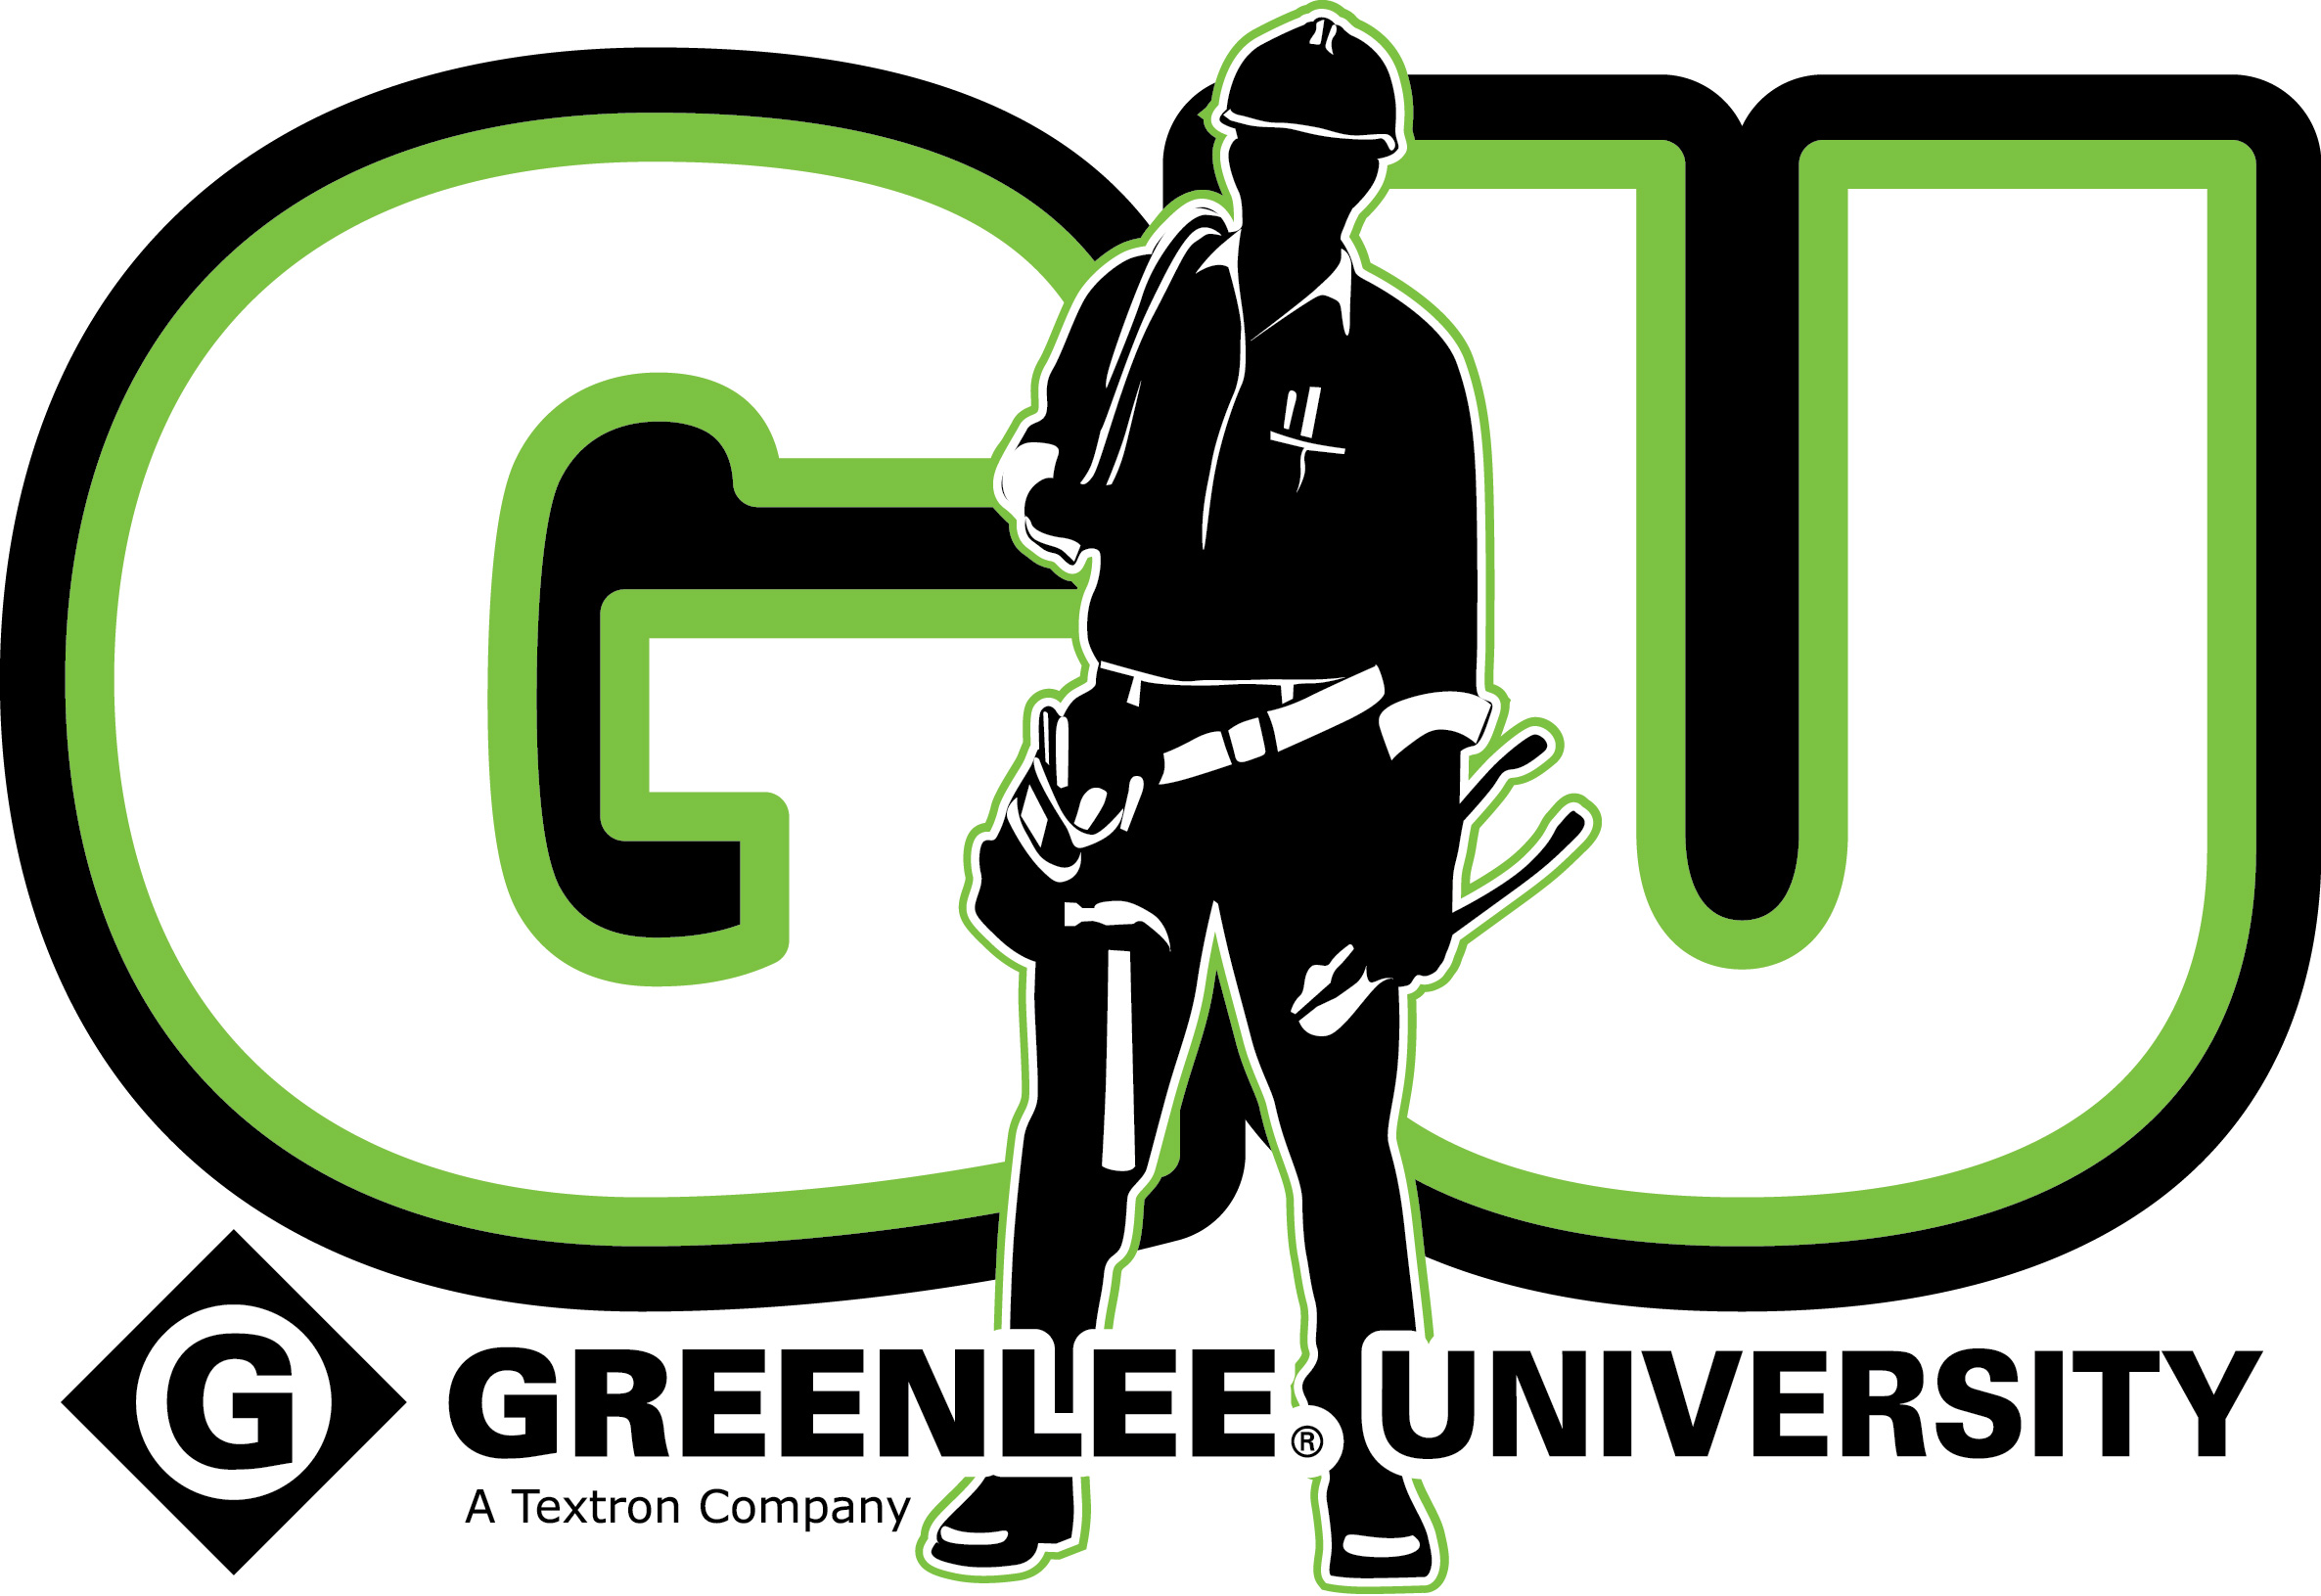 Greenlee Univeristy